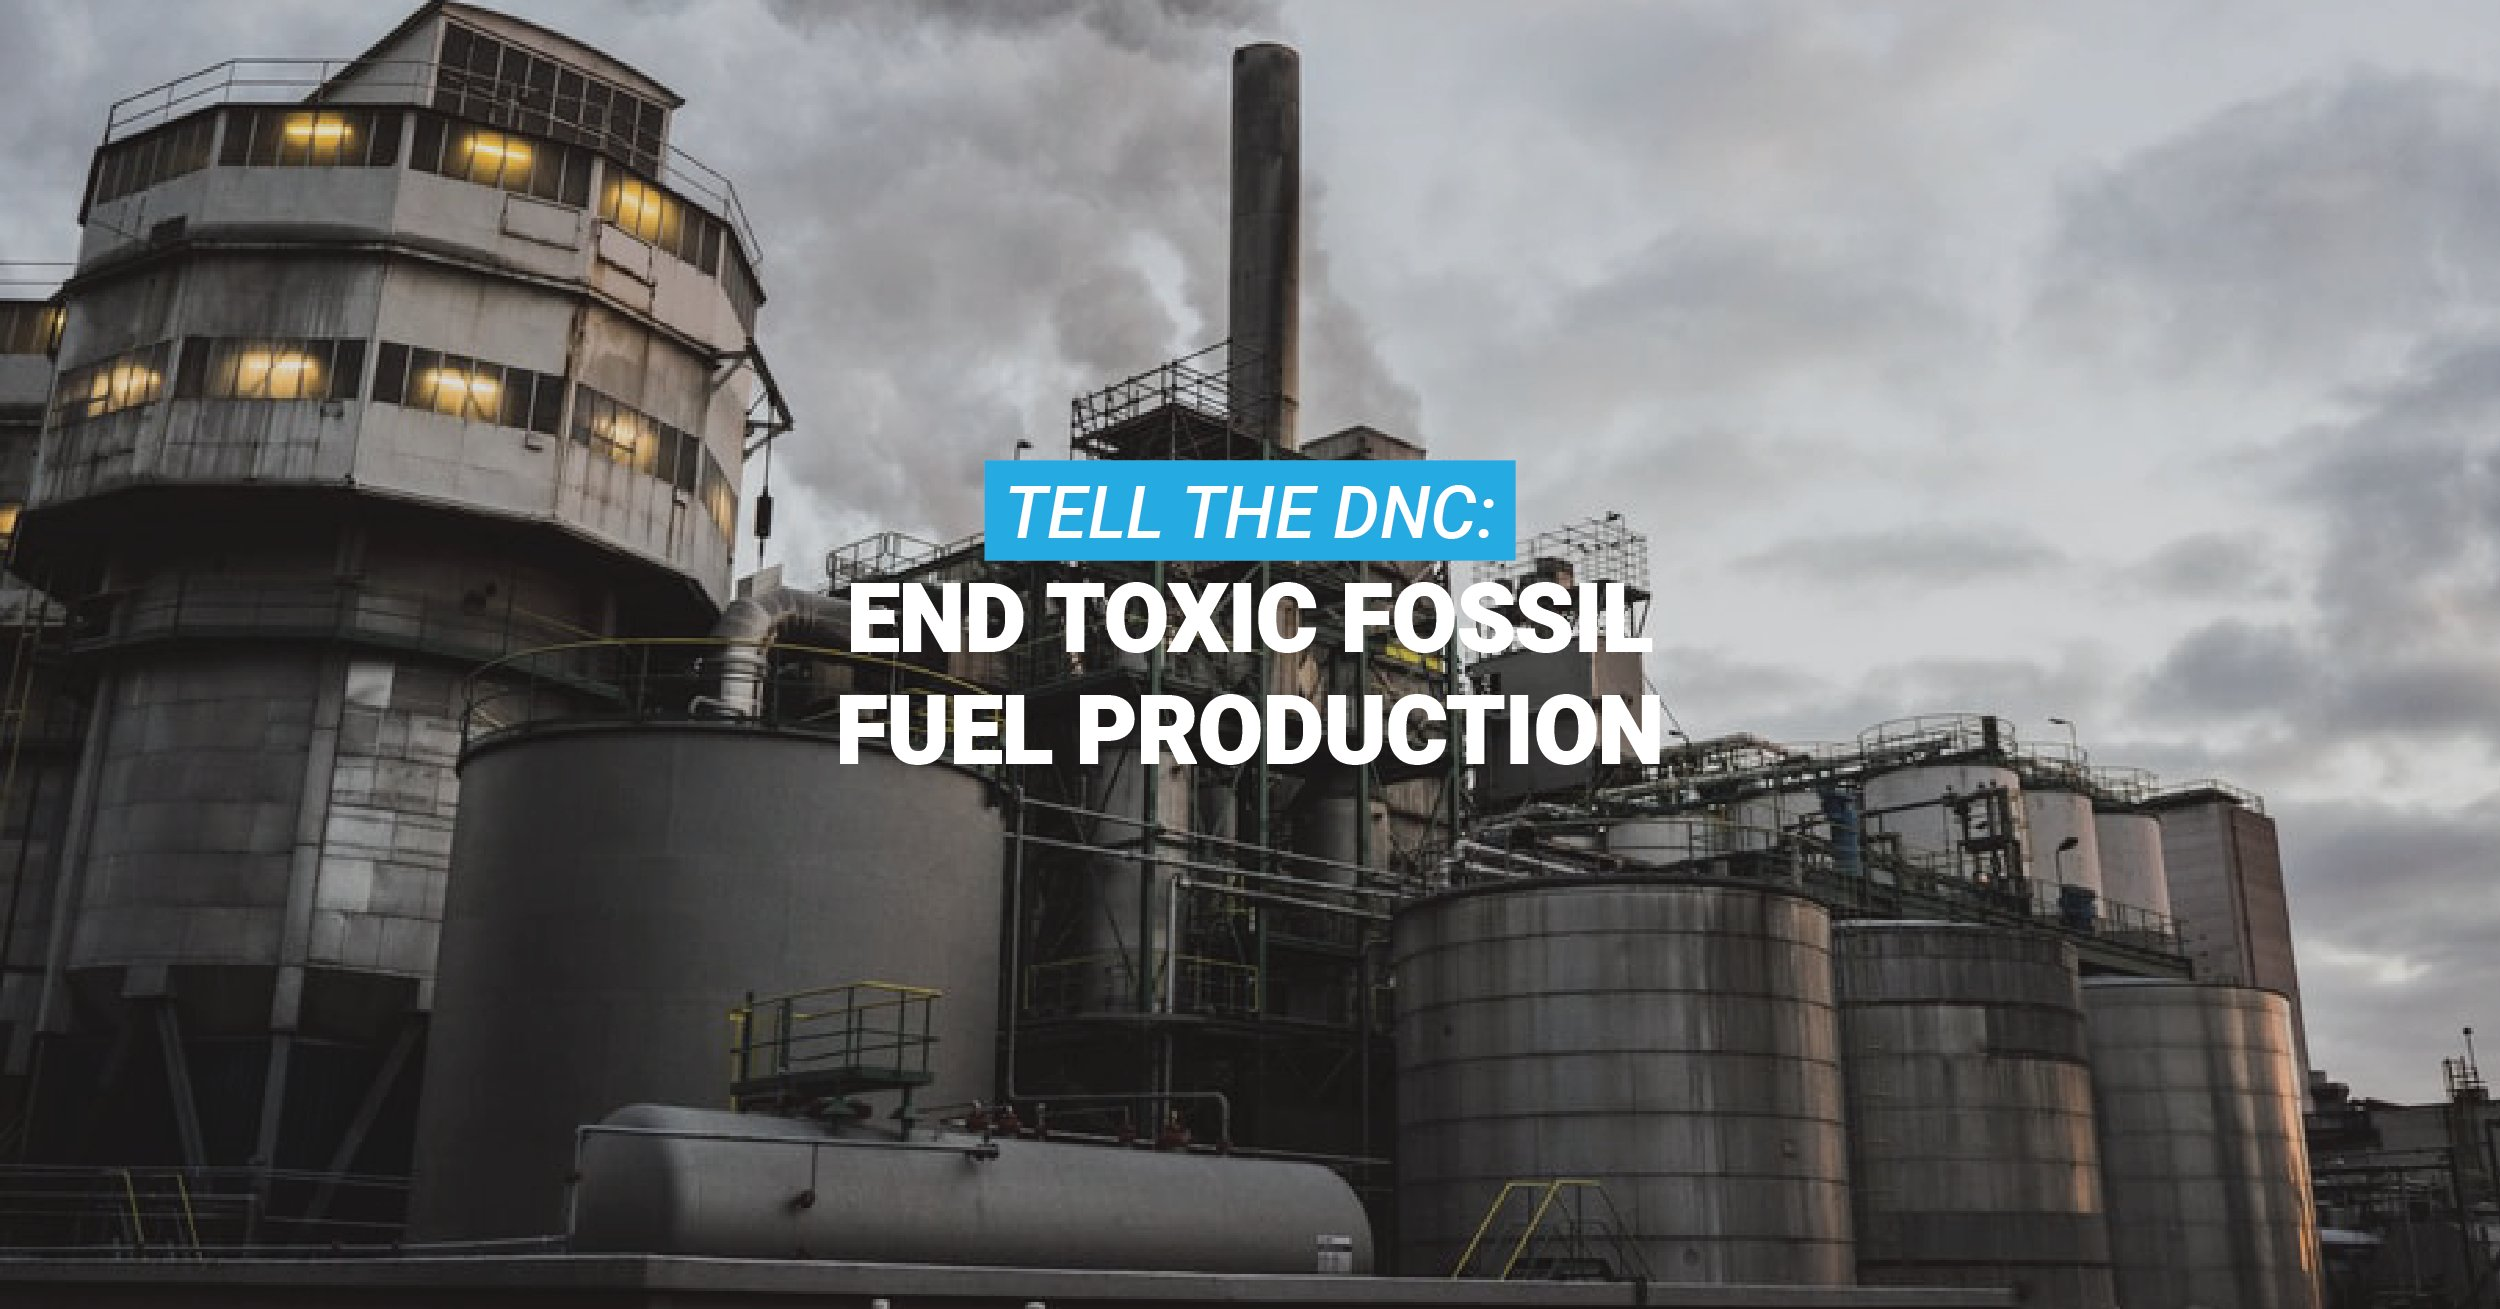 Tens of Thousands Urge Democrats to Strengthen 2020 Platform on Fossil Fuels